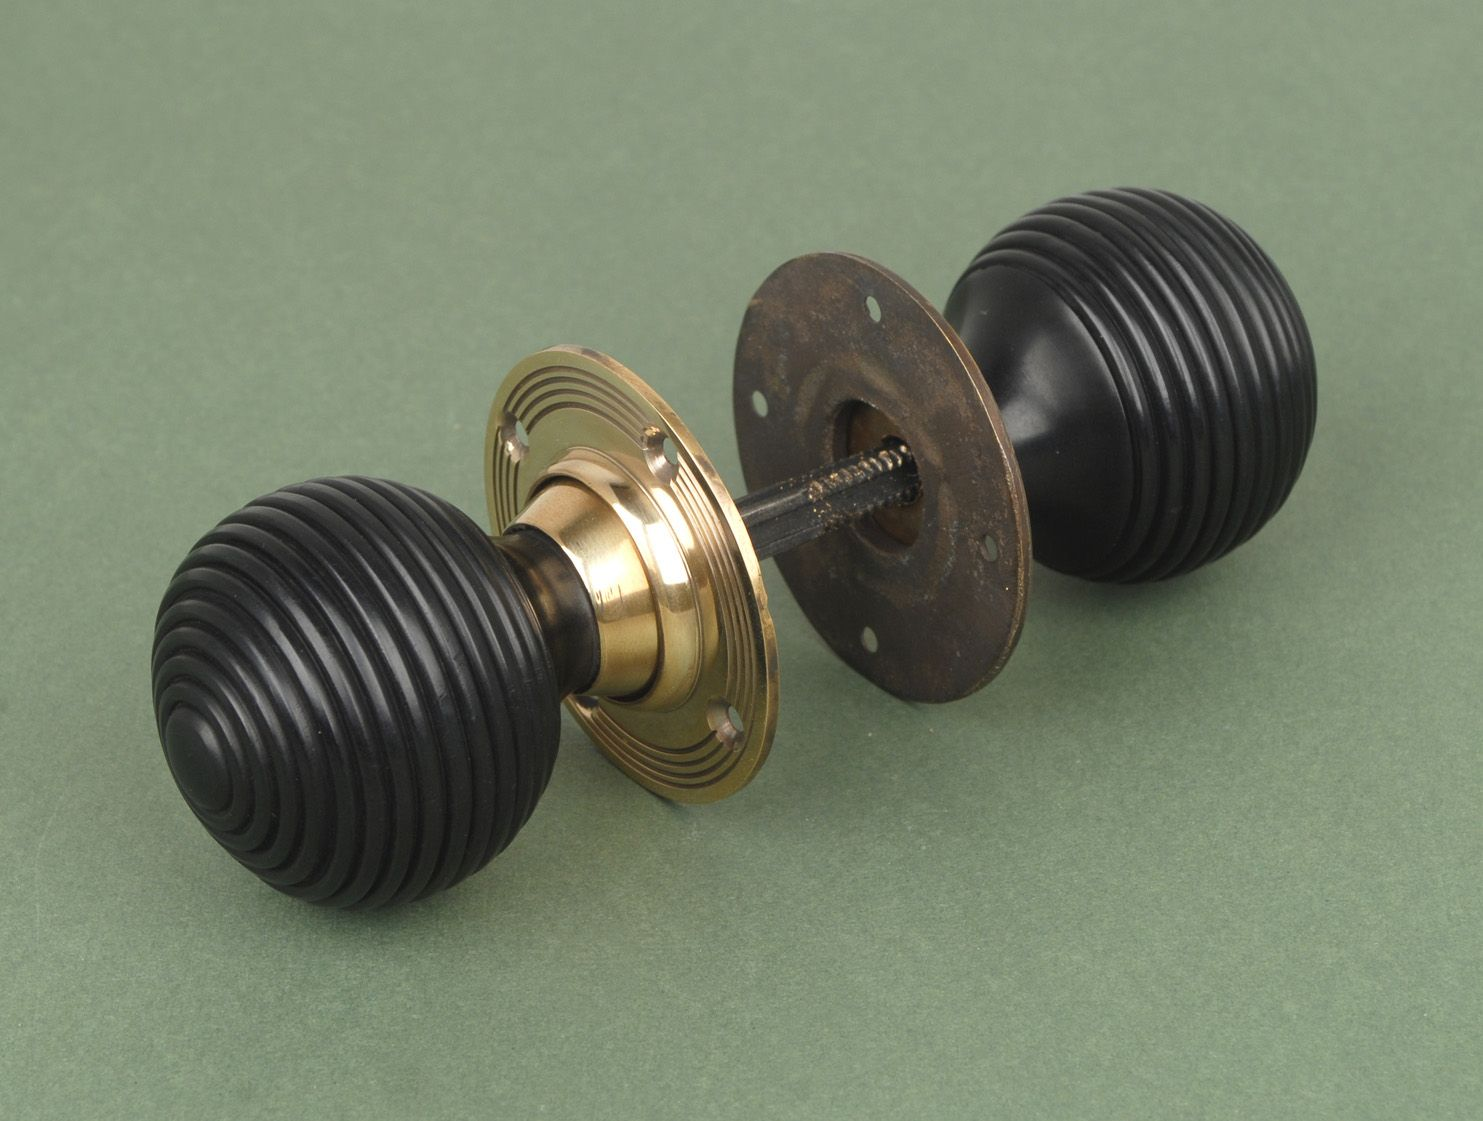 UKAA Buy And Sell Solid Ebony Door Furniture, Beehive Knobs With Aged Brass  Roseplate, Antique Door Furniture And Ebony Door Knobs Online And For Sale  In ...